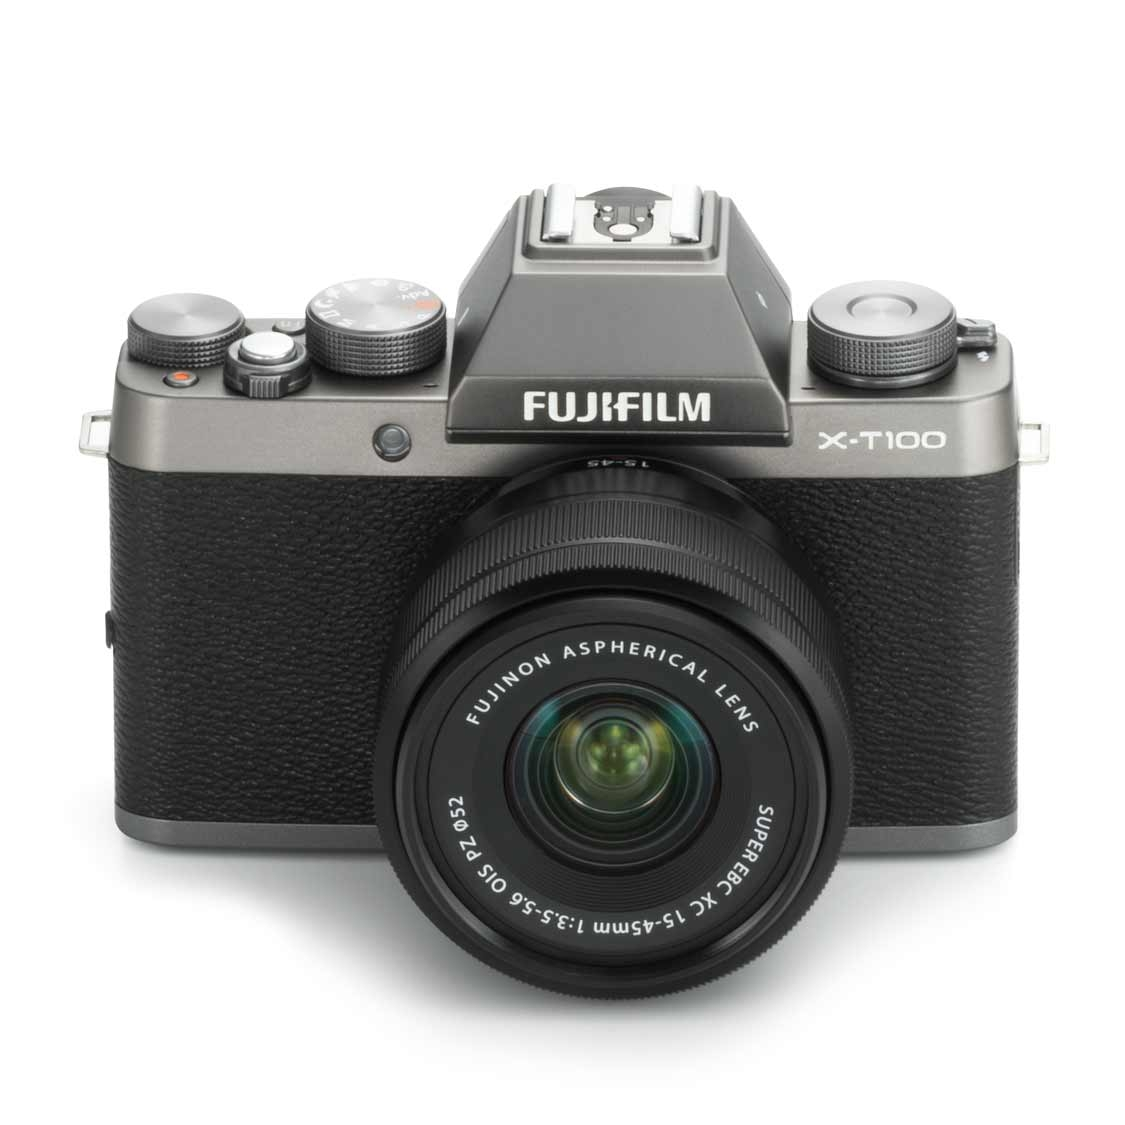 Fujifilm X-T100 Camera (silver) with 15-45mm PZ Lens